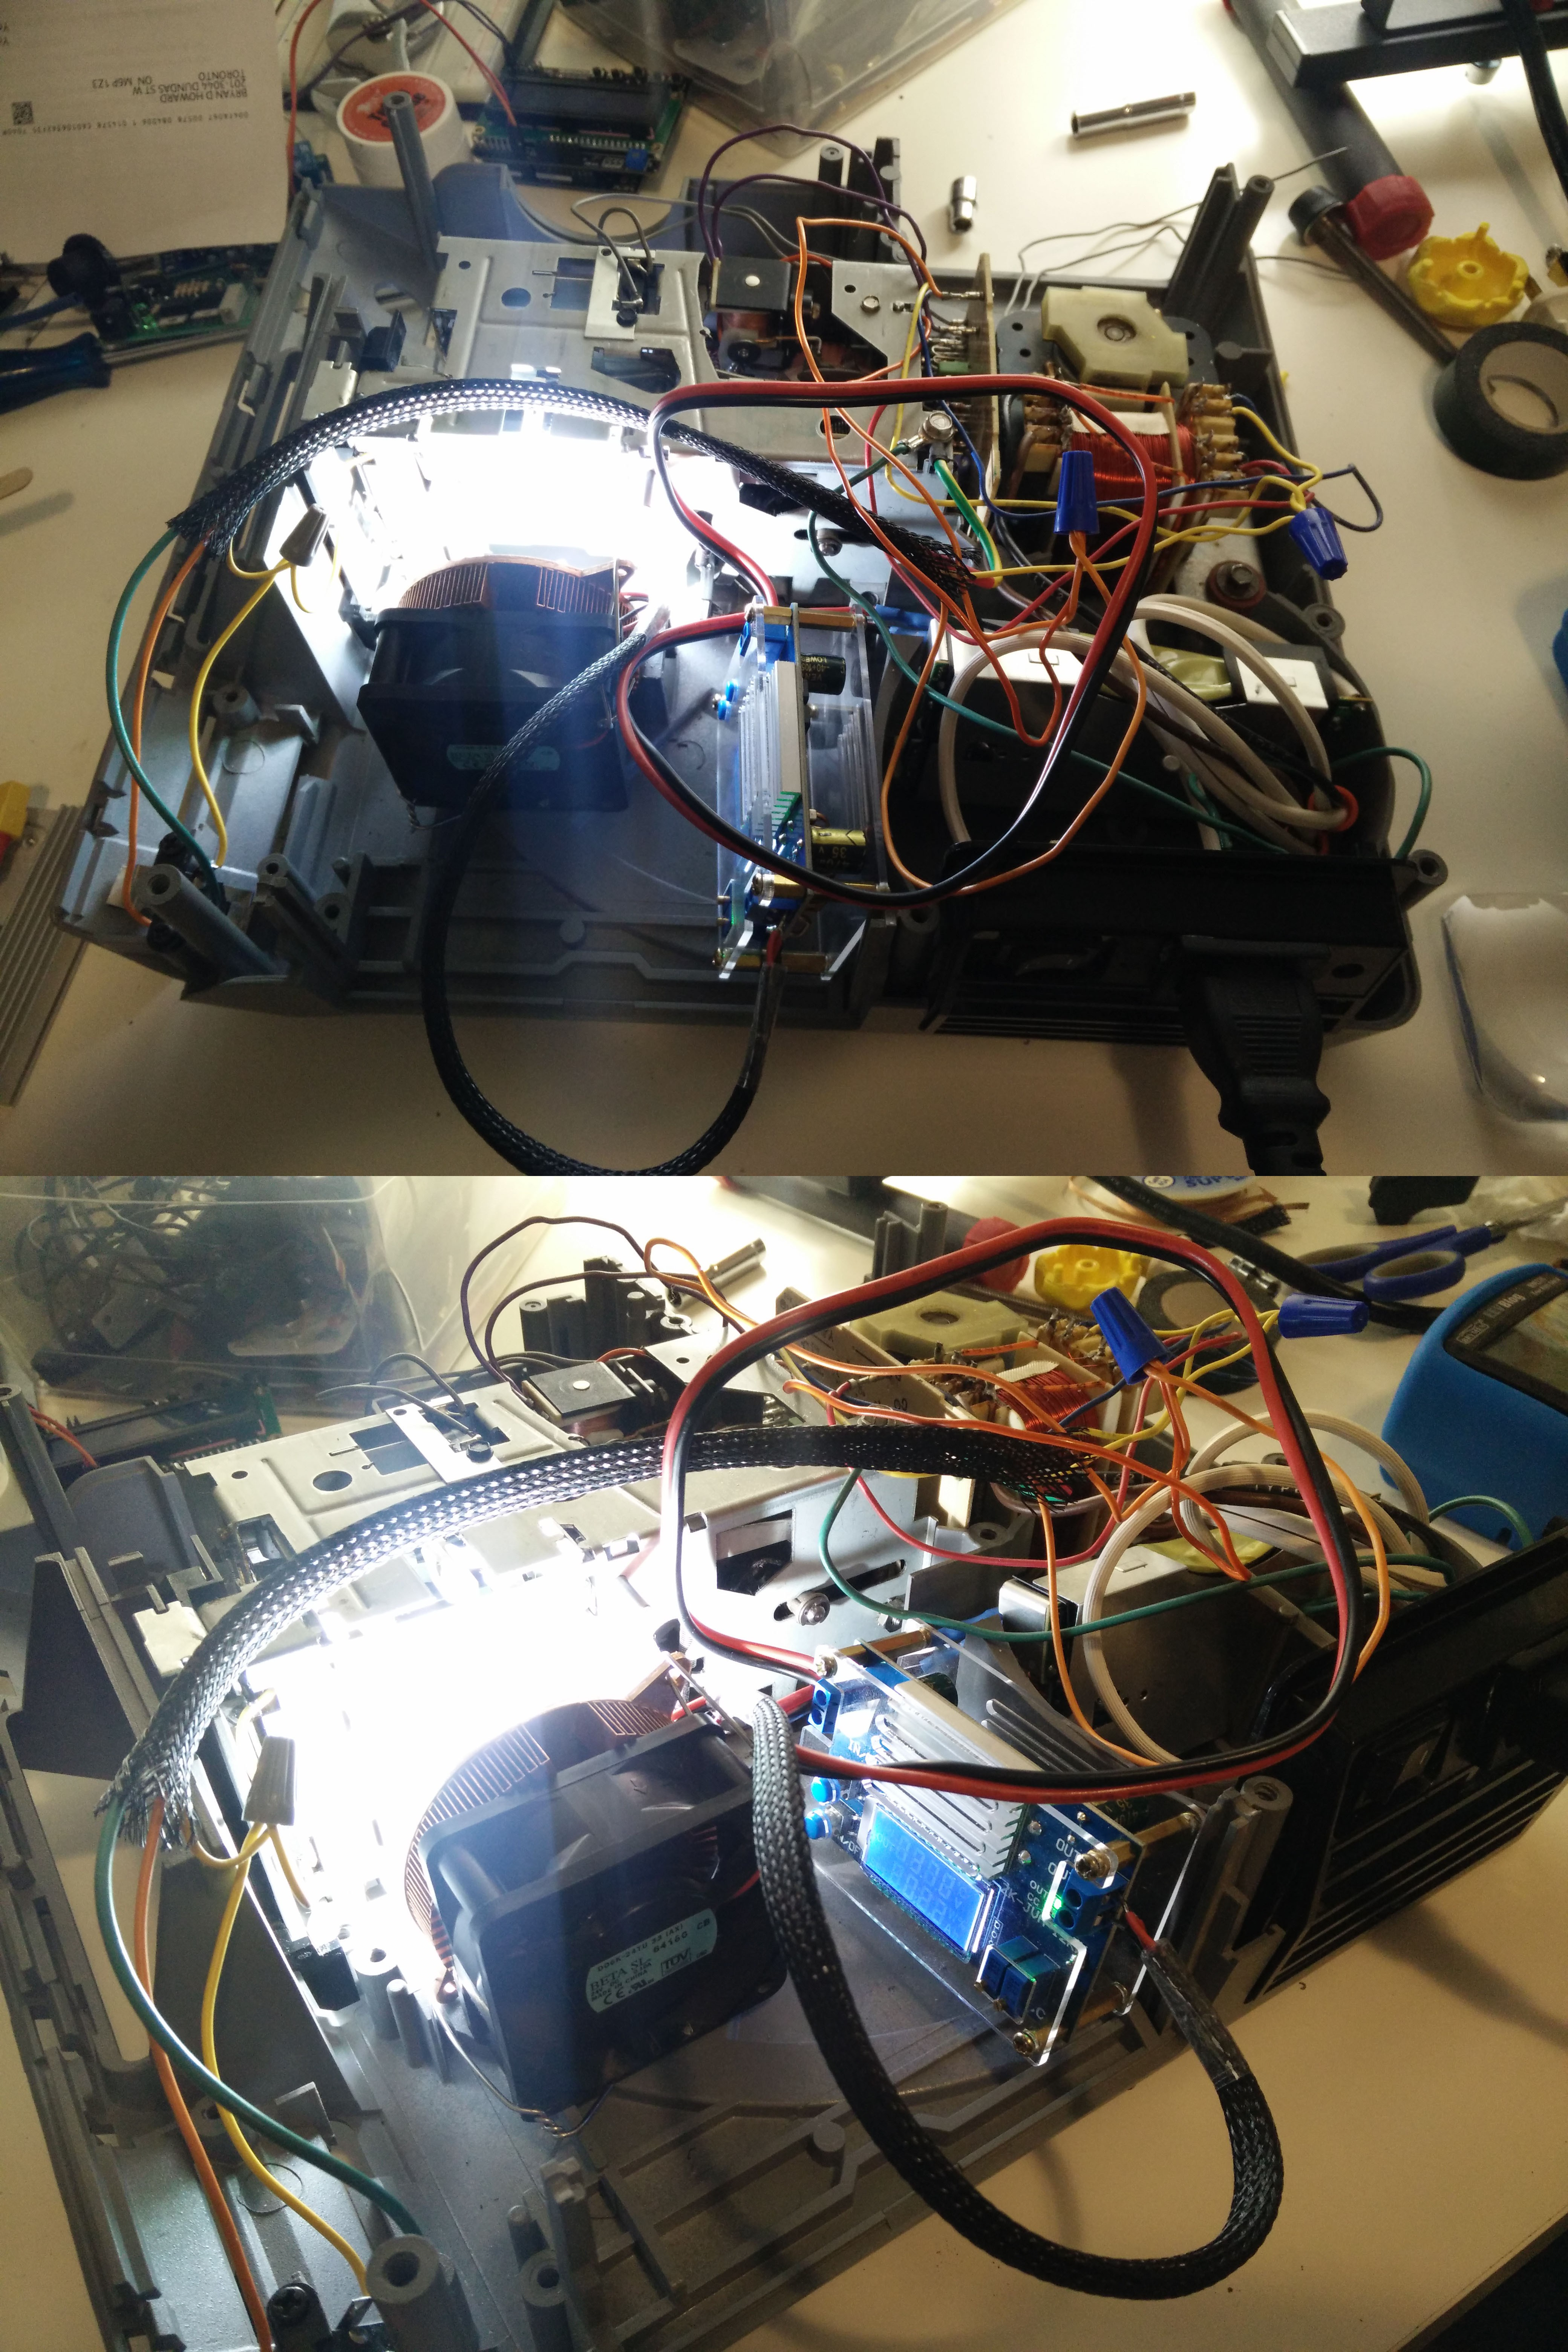 Lighting With Led Details Computer Ac Plug Wiring The Needs Some Form Of Active Cooling To Keep It From Burning Up Im Using A Copper Heatsink An Old Gpu And 24v Fan